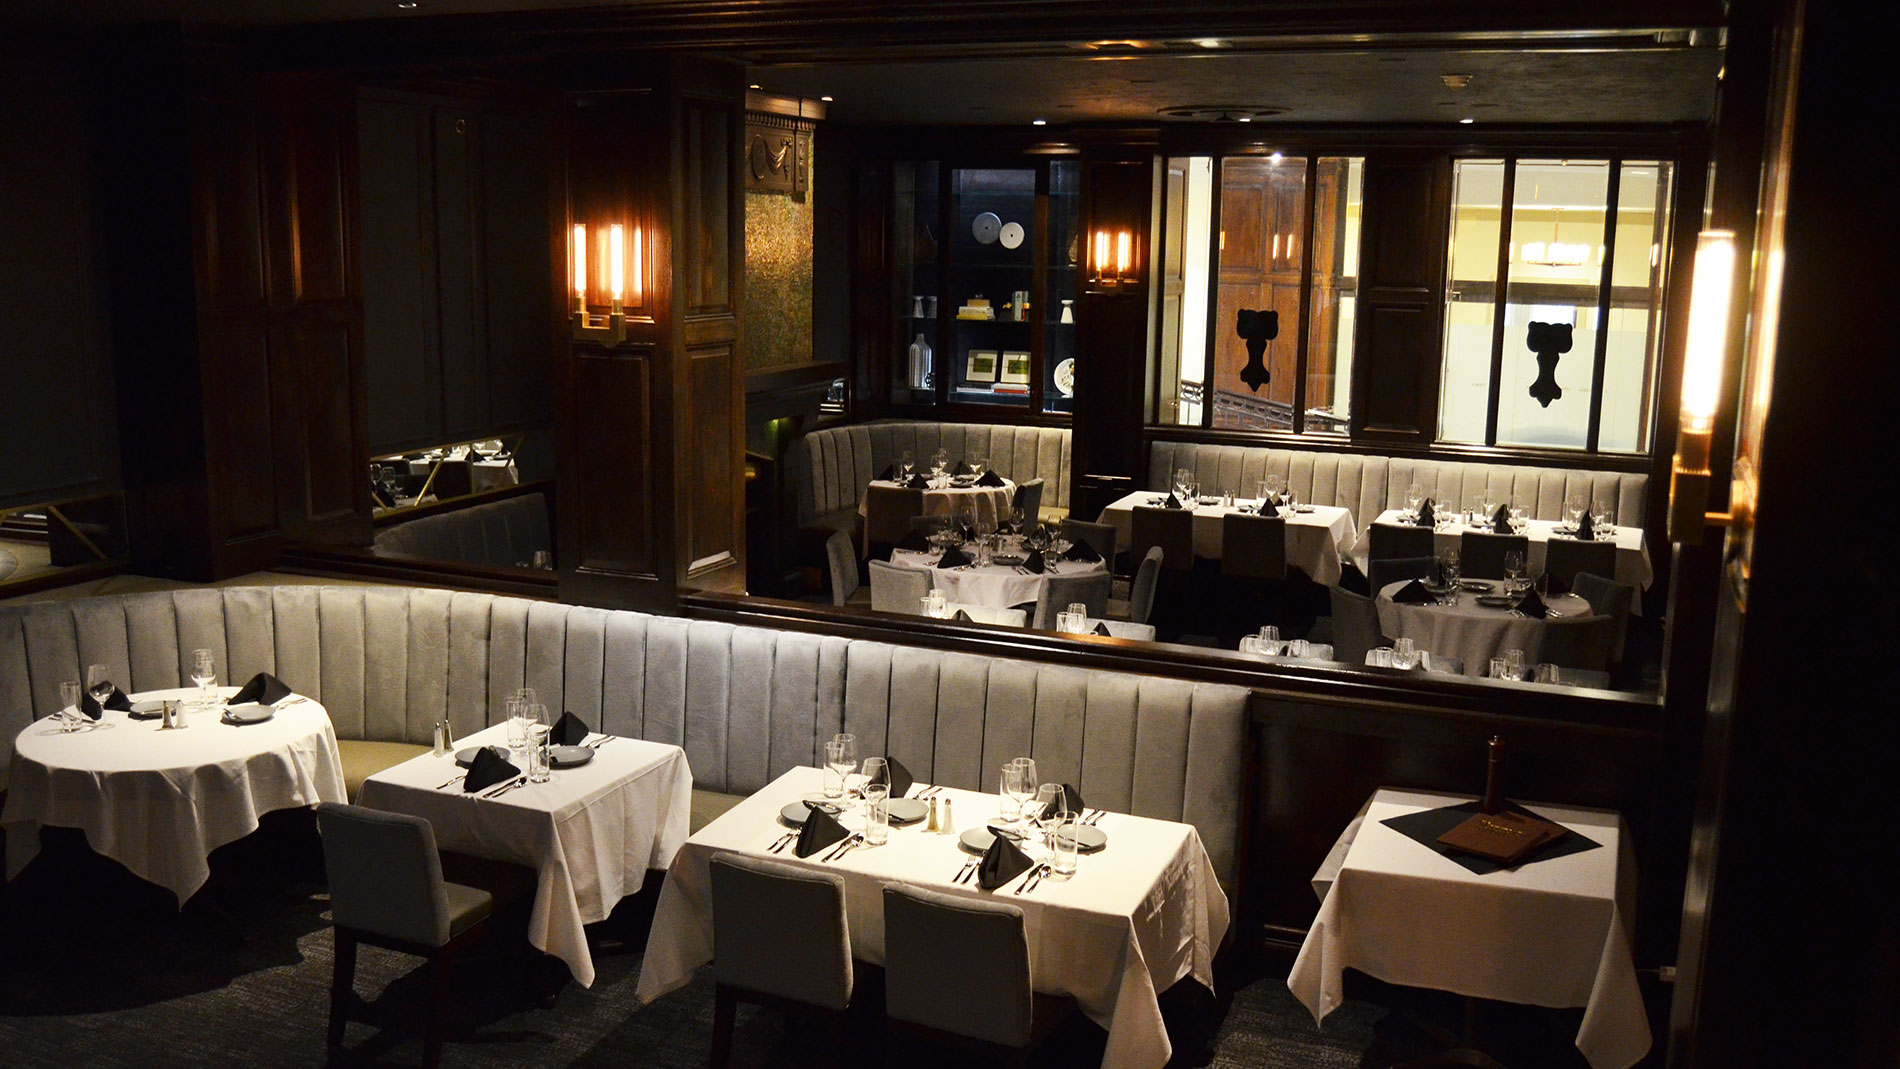 an upscale dining room at a steakhouse